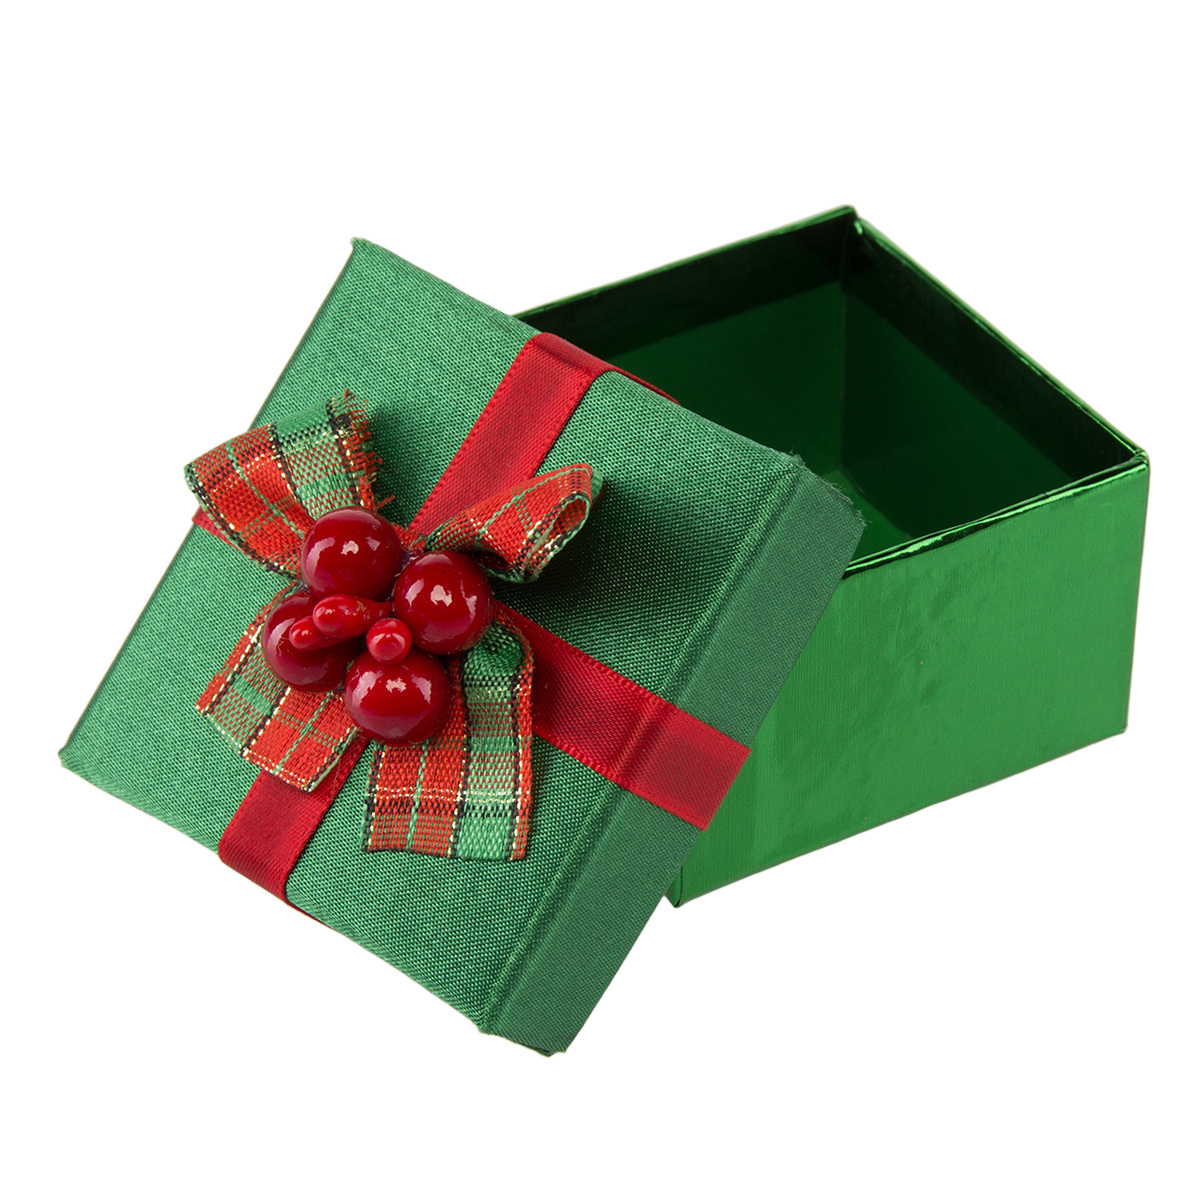 8pk small presents holiday mini gift boxes lids